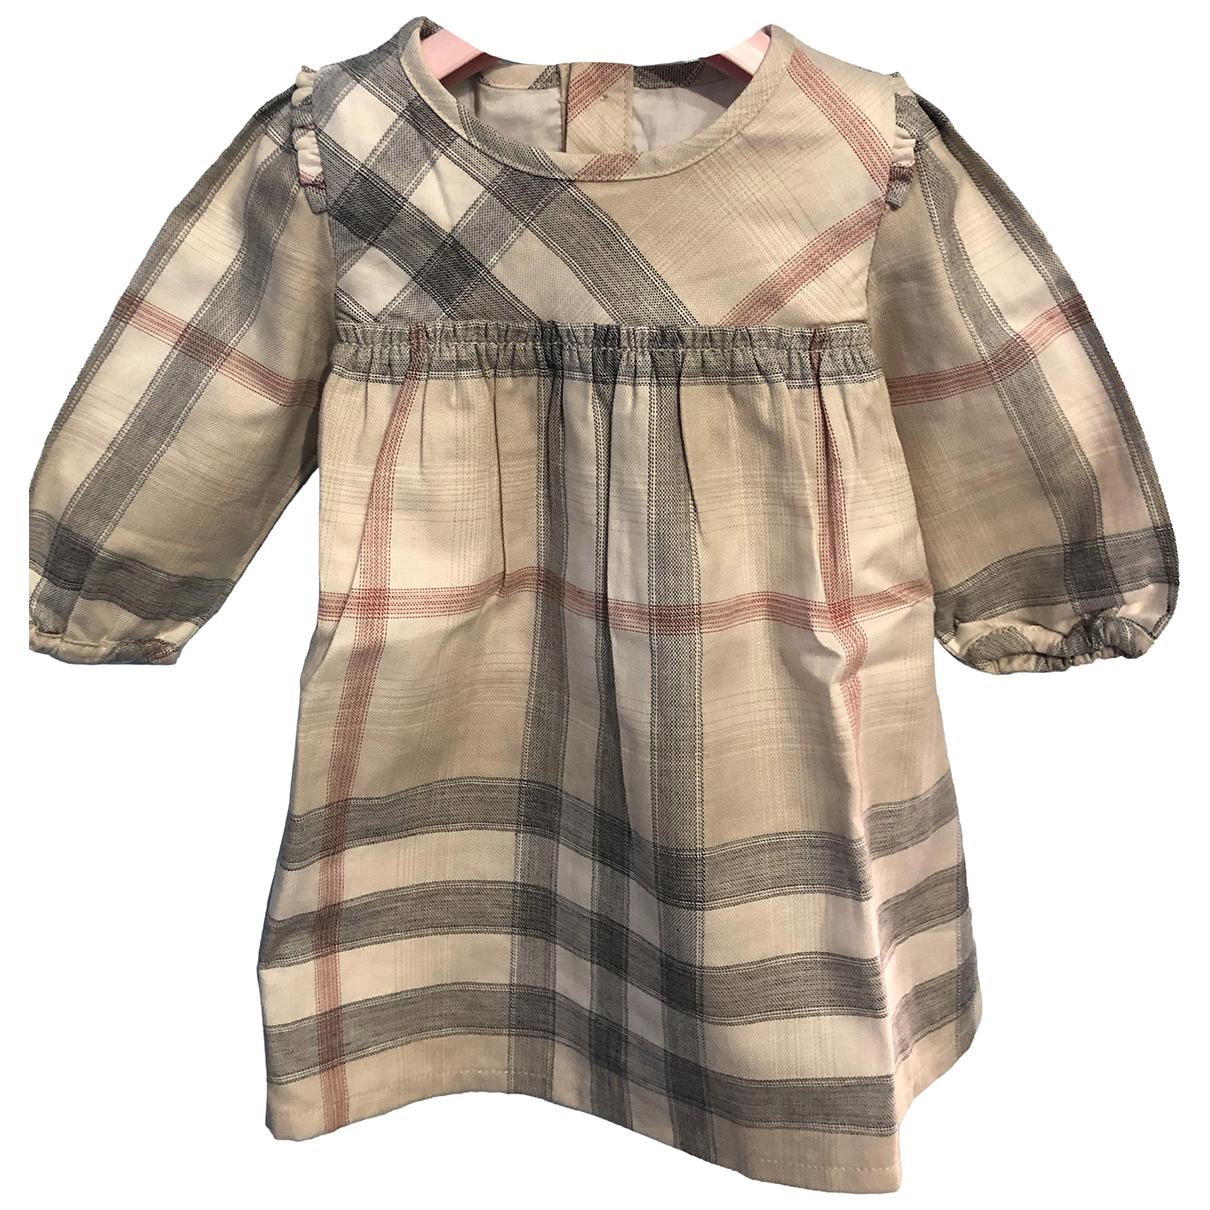 Burberry N Cotton dress for Kids 3 months - up to 60cm FR